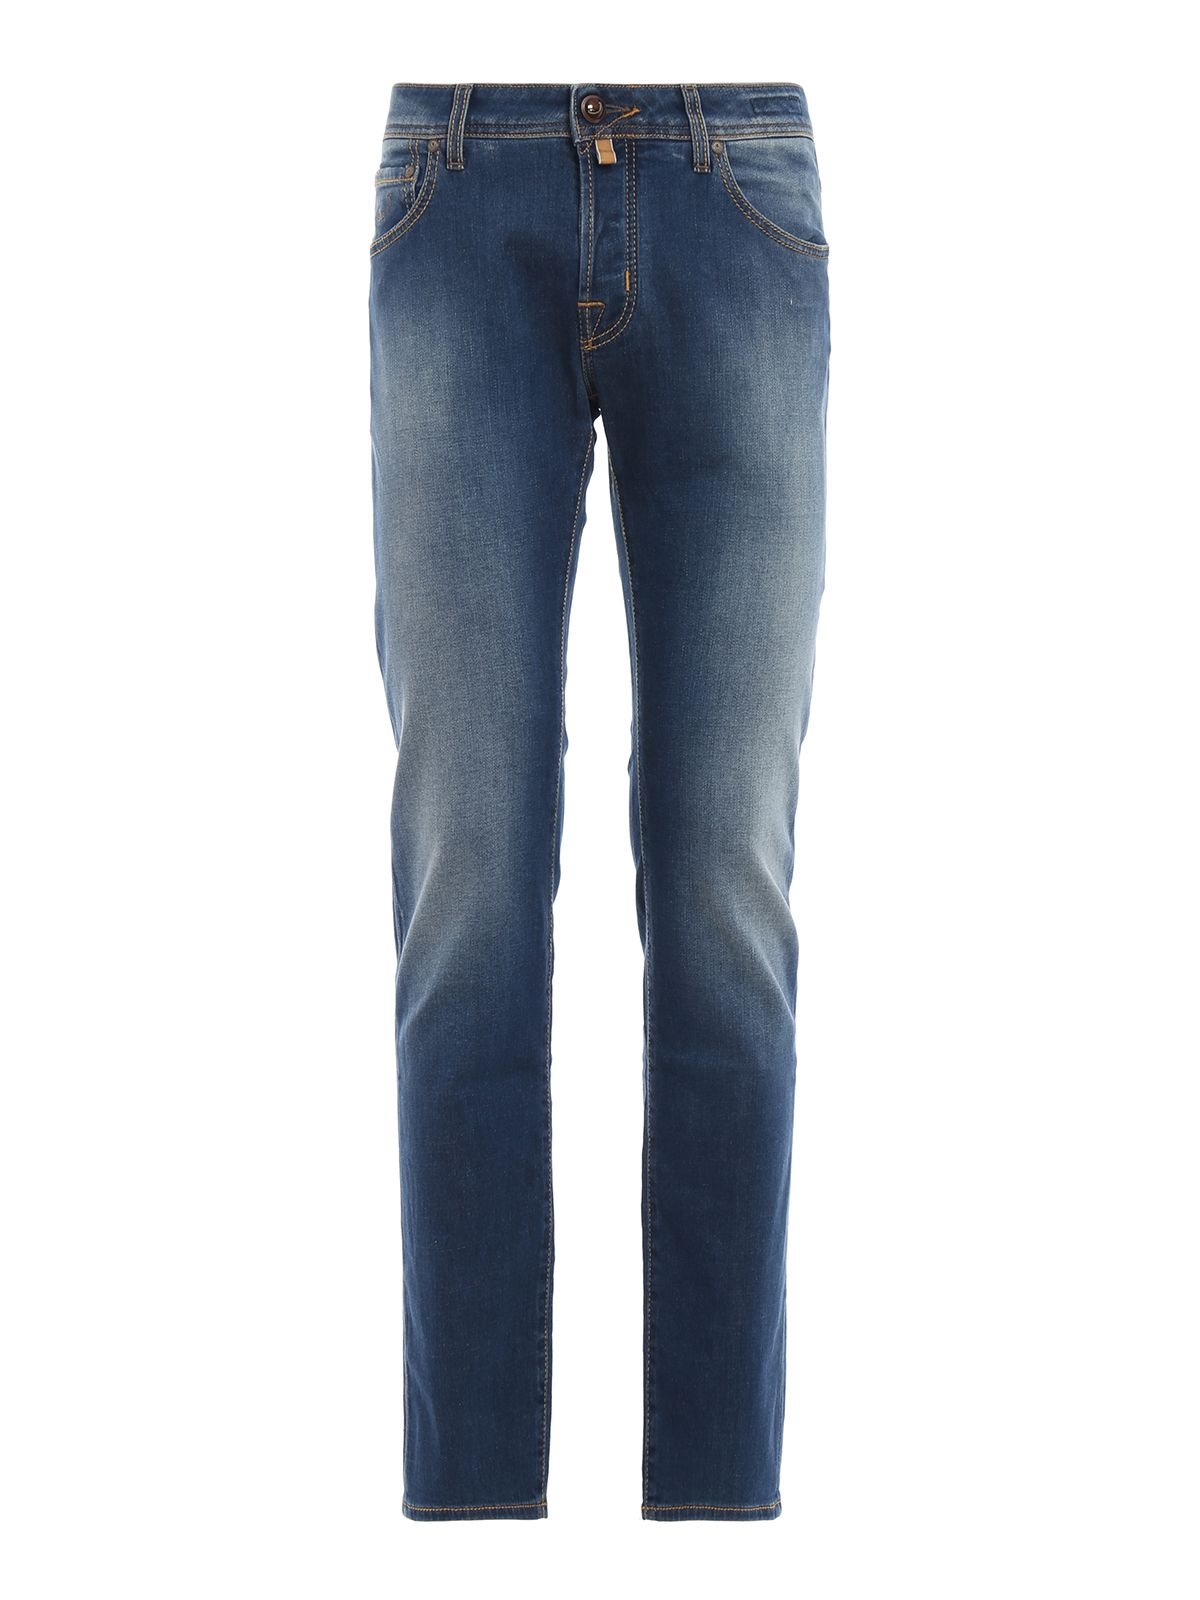 Jacob Cohen J622 Comf Blue Medium Wash Tailored Jeans